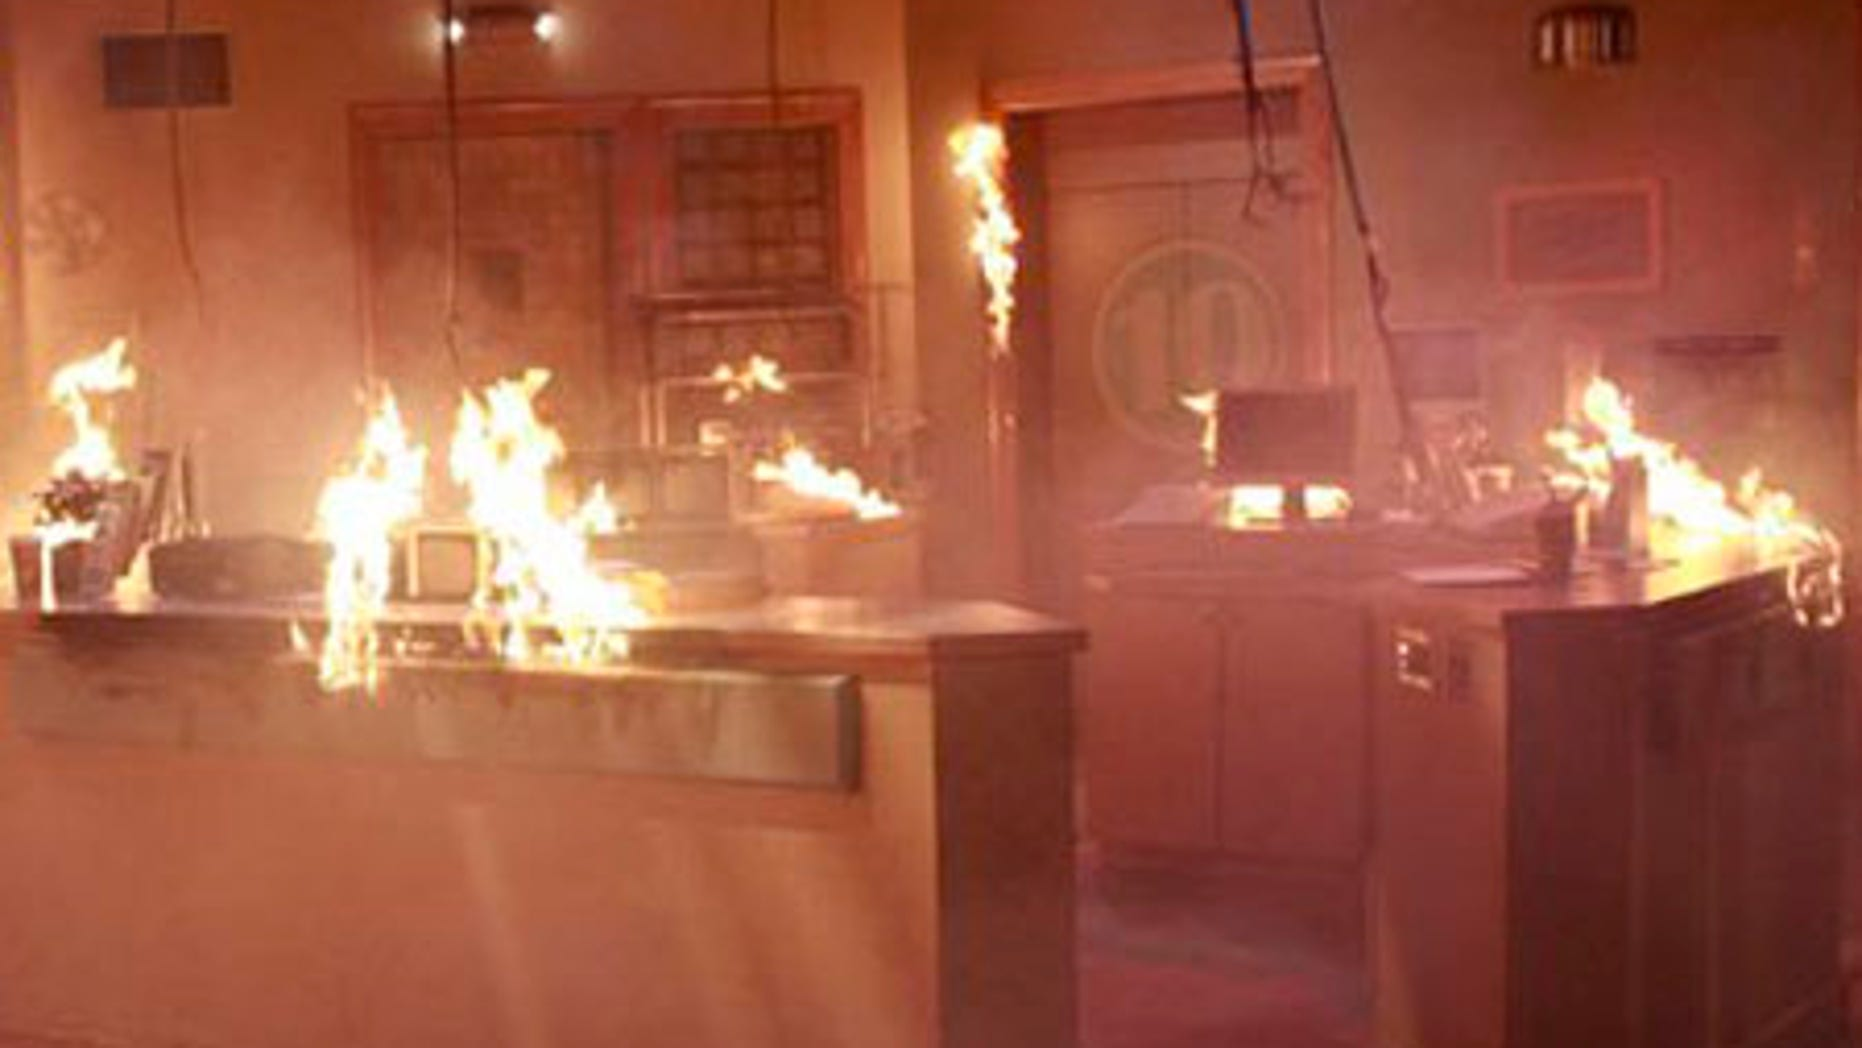 """In this image released by ABC, the nurses hub set from the daytime series """"General Hospital,"""" is shown ablaze. After 45 years, the ABC daytime soap's long-standing hospital set is flatlining as part of an explosive storyline. Following a fiery crisis, the show's crew has ignited the clinical den of drama, and producers plan to construct a totally new interior. (AP Photo/ABC, Ron Tom) ** NO SALES **"""